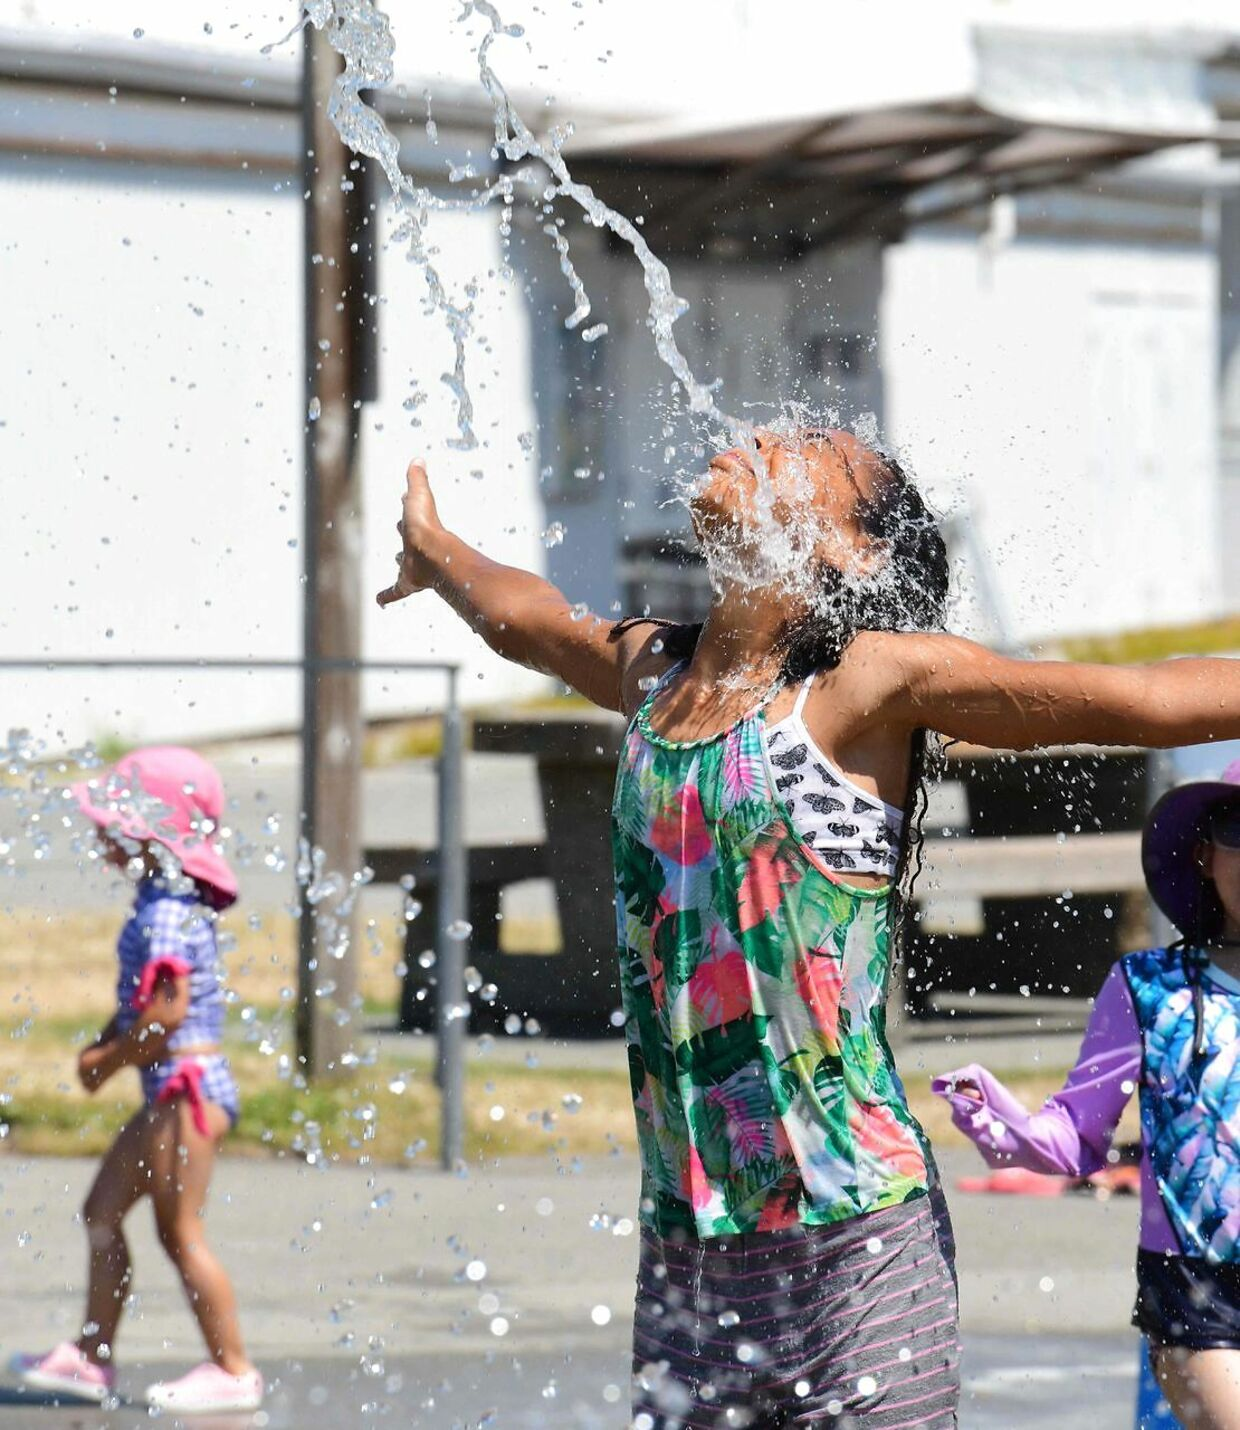 Kids cool off at a community water park on a scorching hot day in Richmond, British Columbia, June 29, 2021.